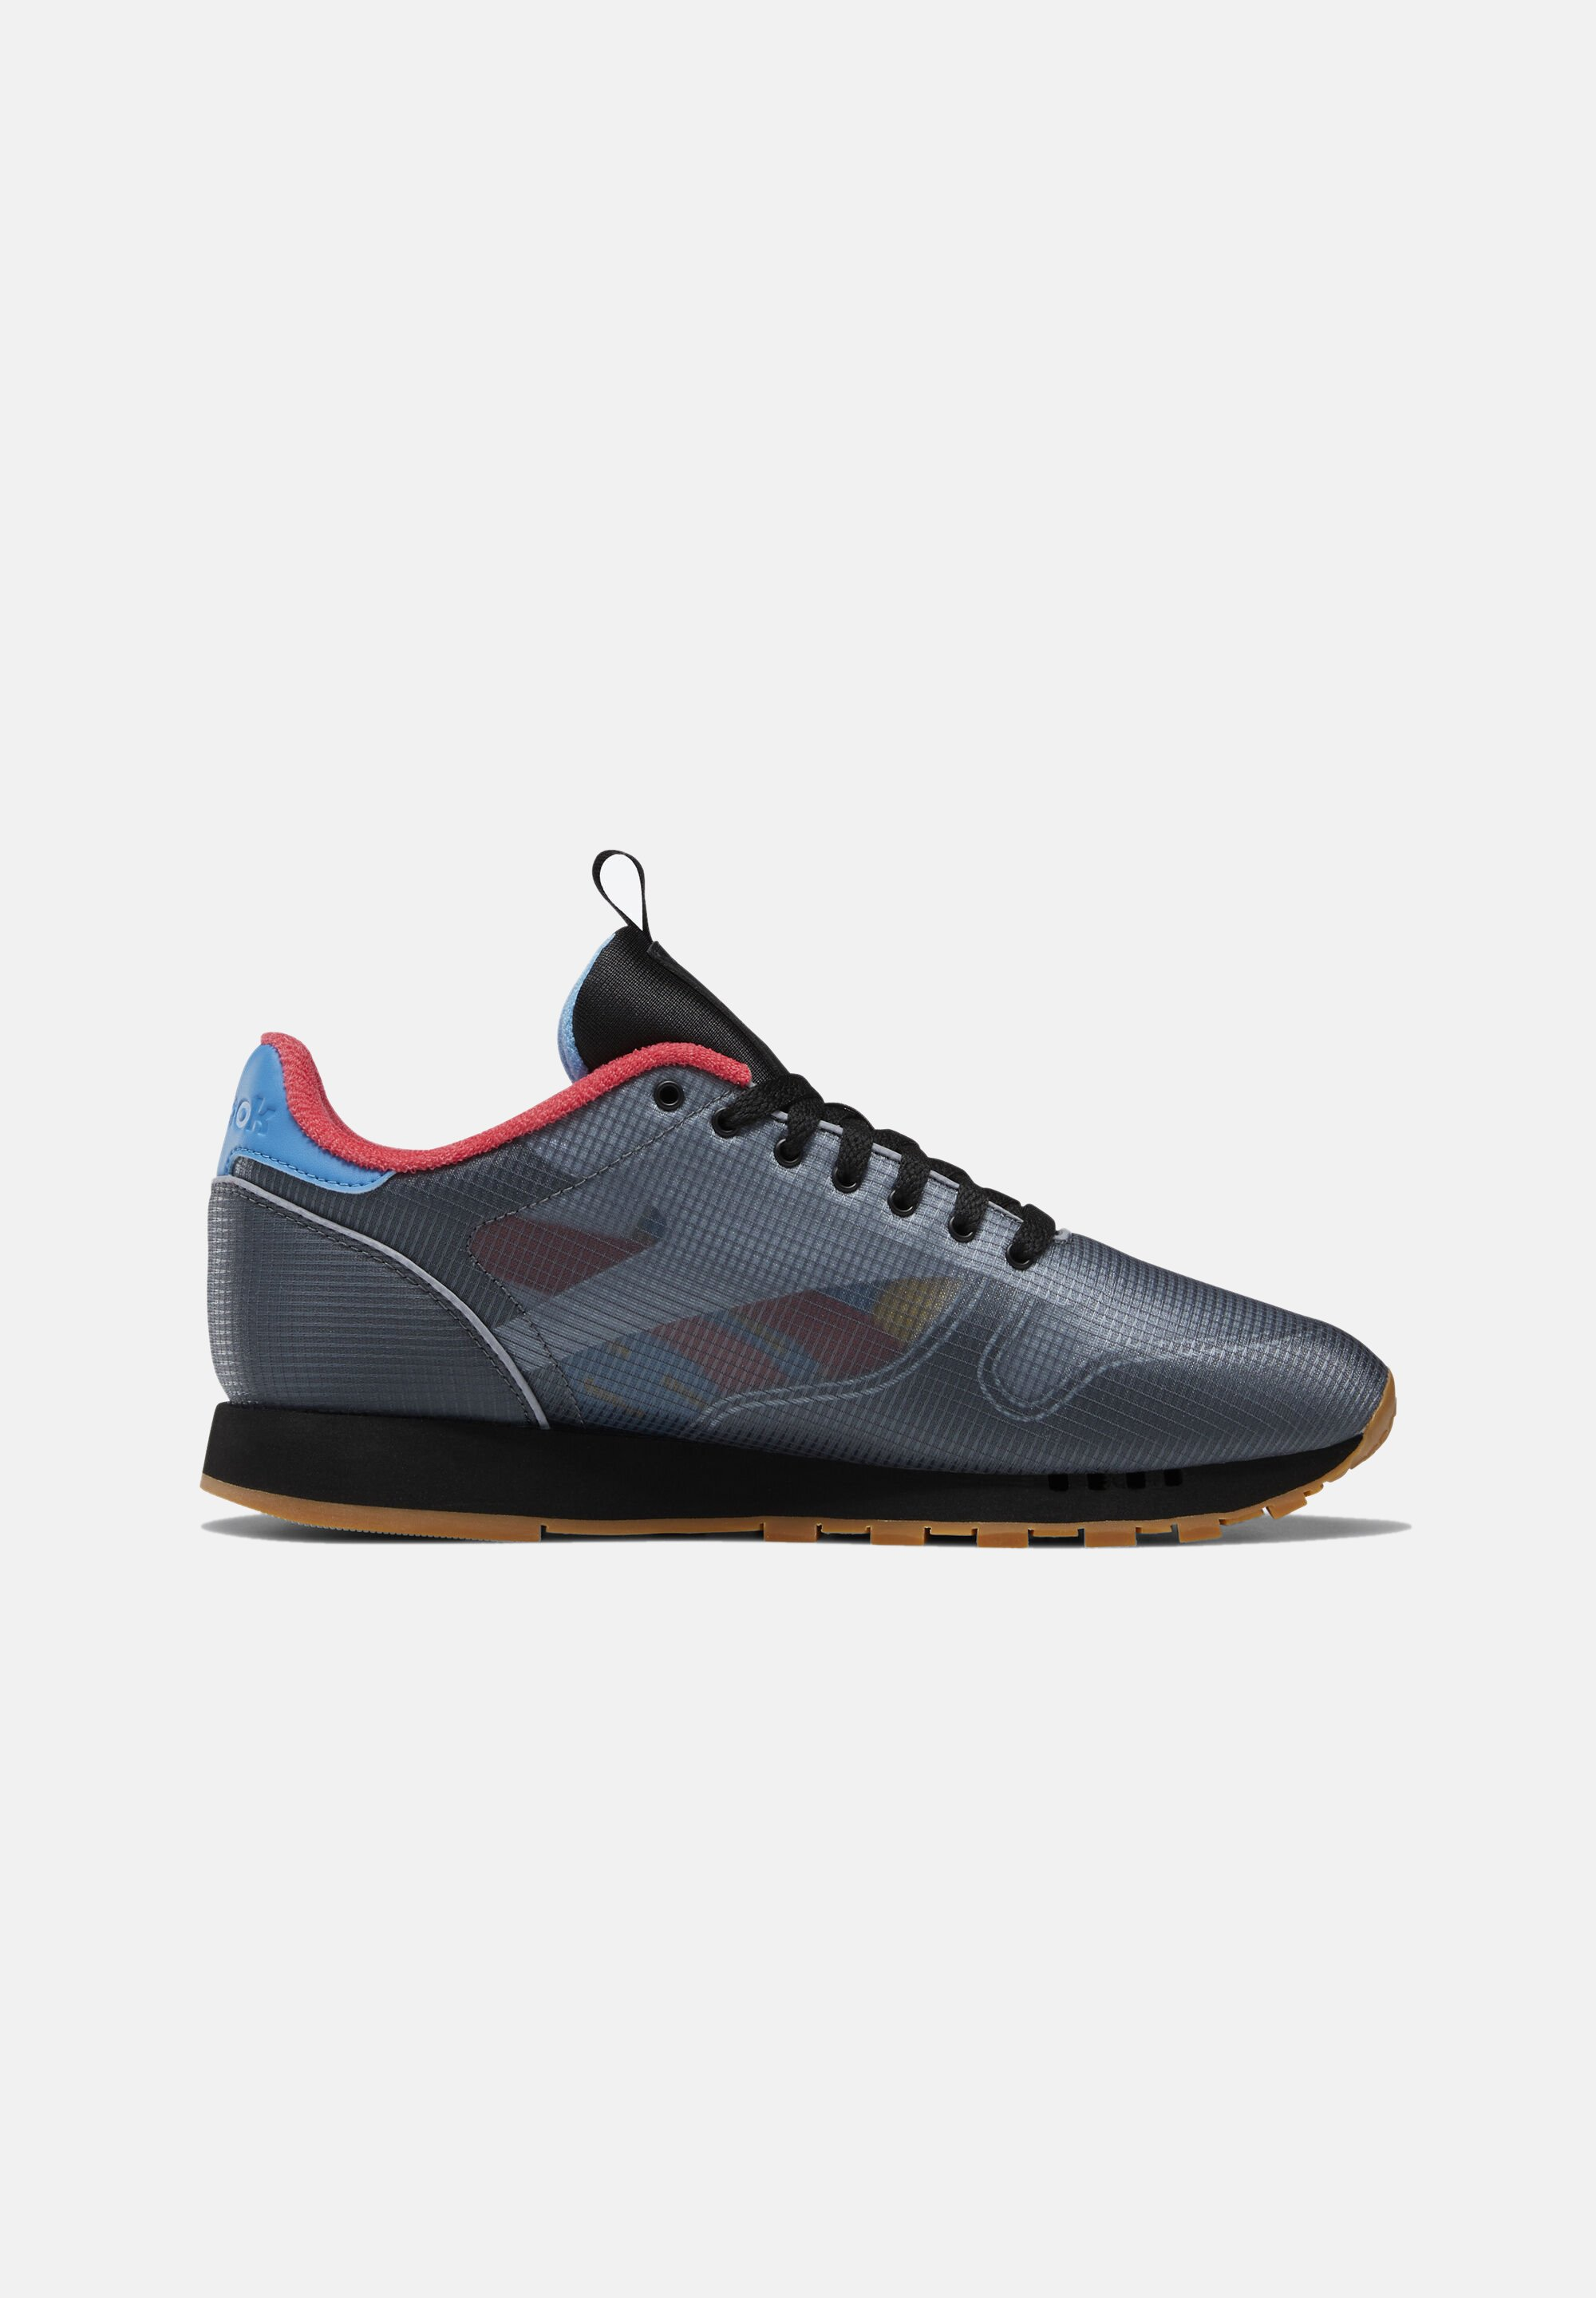 Reebok Classic Leather Shoes - Sneaker Low Black Friday